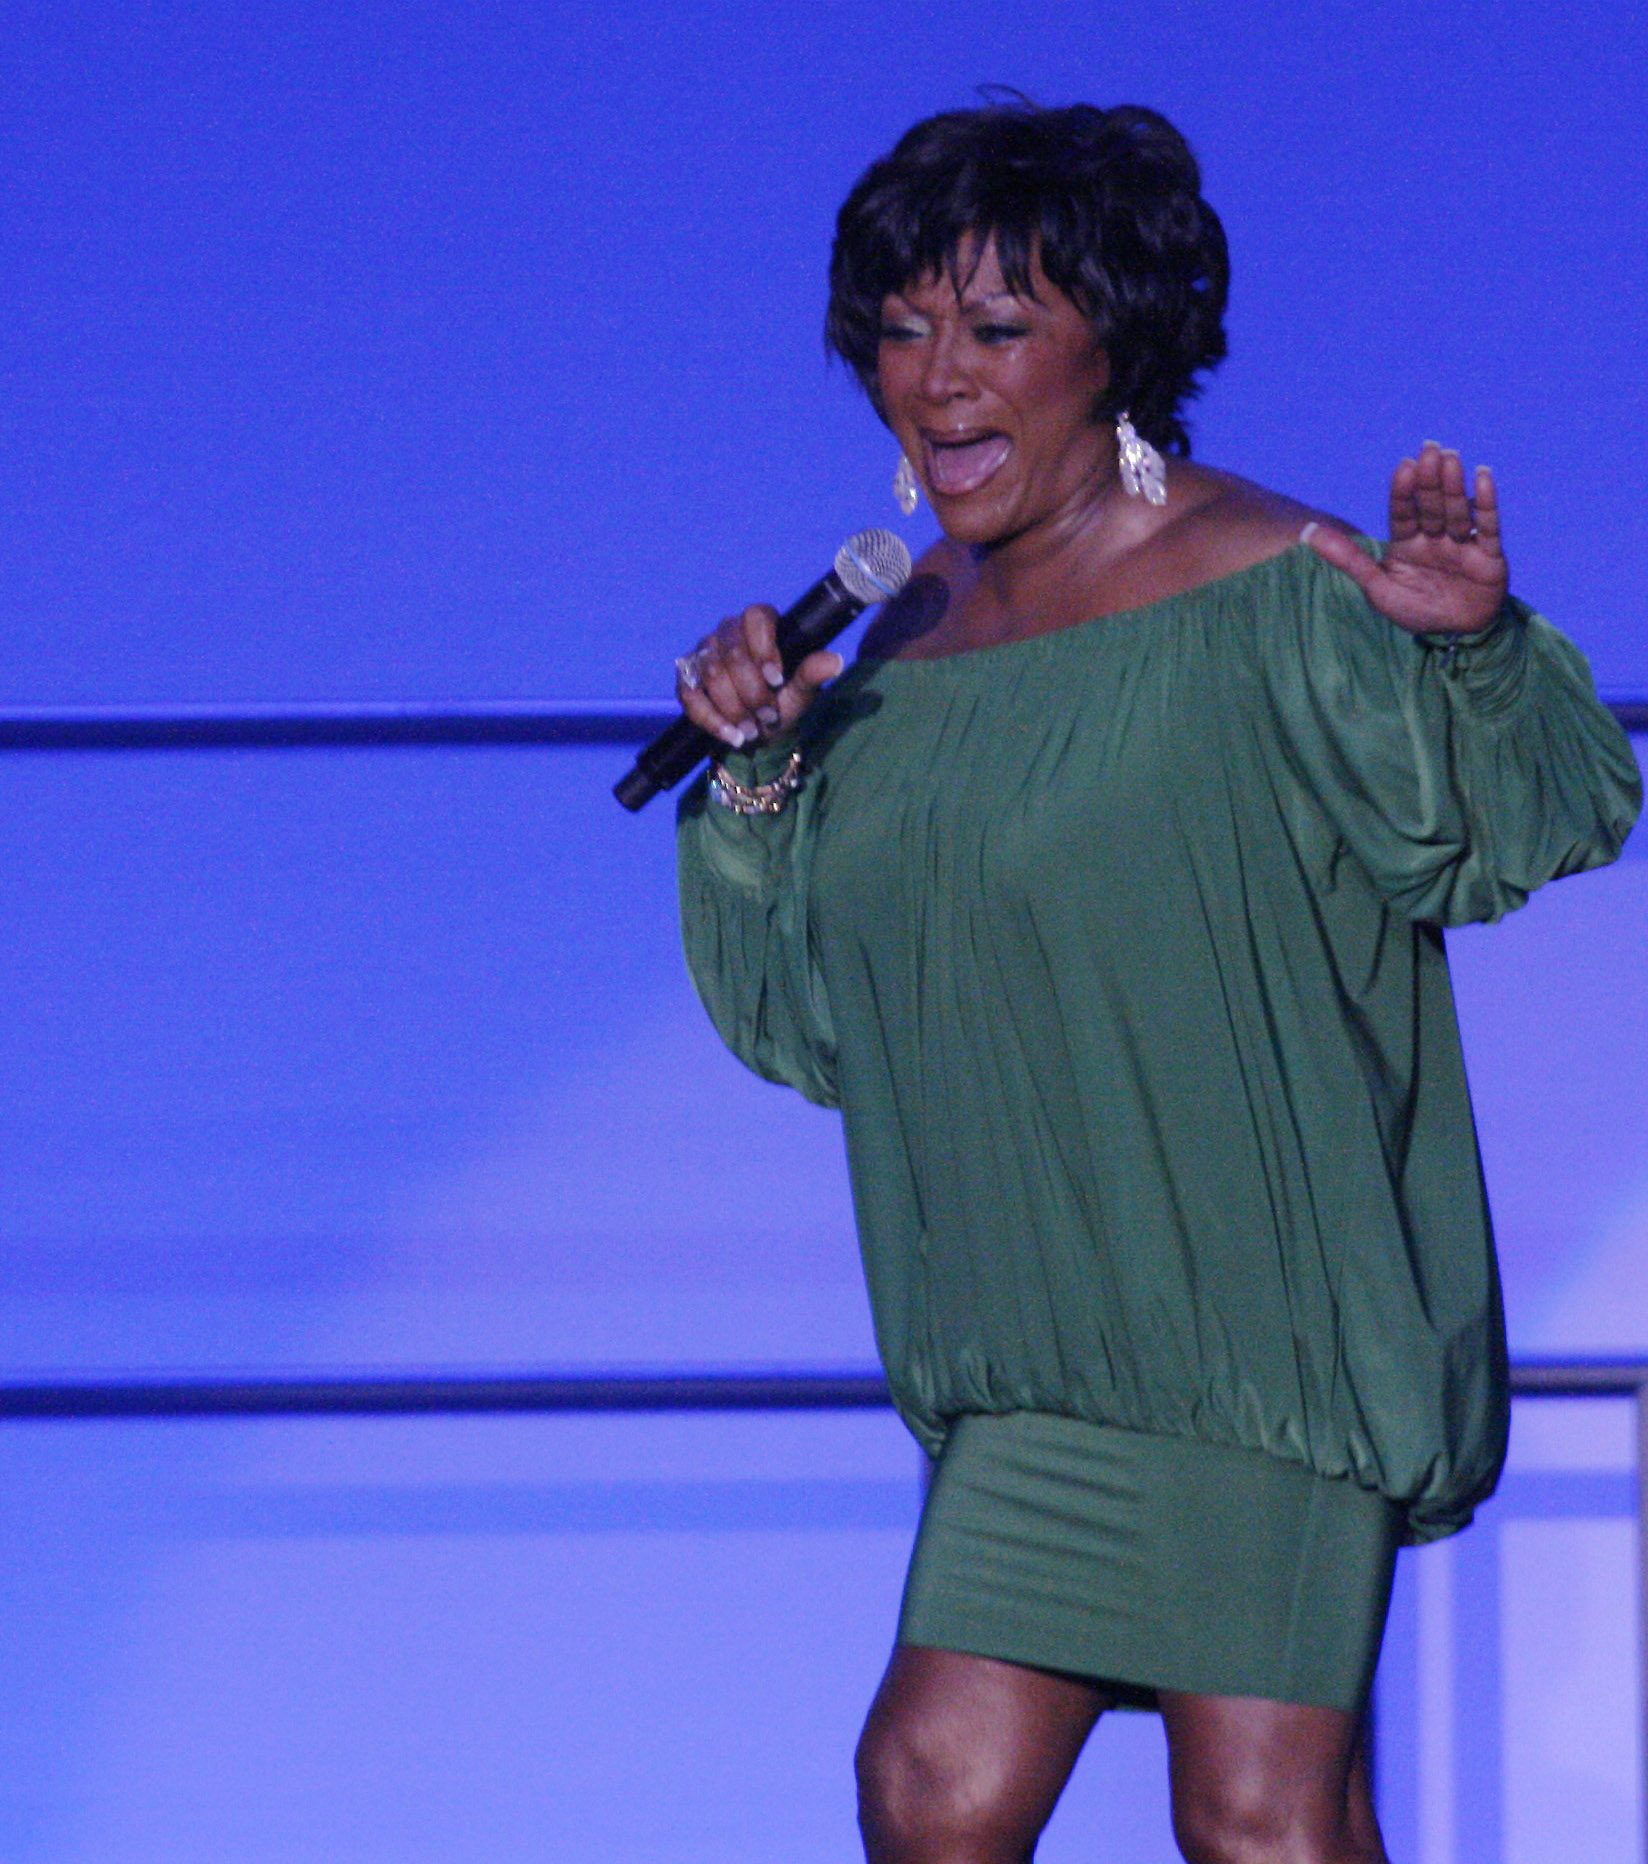 The 74-year old daughter of father Henry Holte and mother Bertha Holte Patti LaBelle in 2018 photo. Patti LaBelle earned a  million dollar salary - leaving the net worth at 50 million in 2018